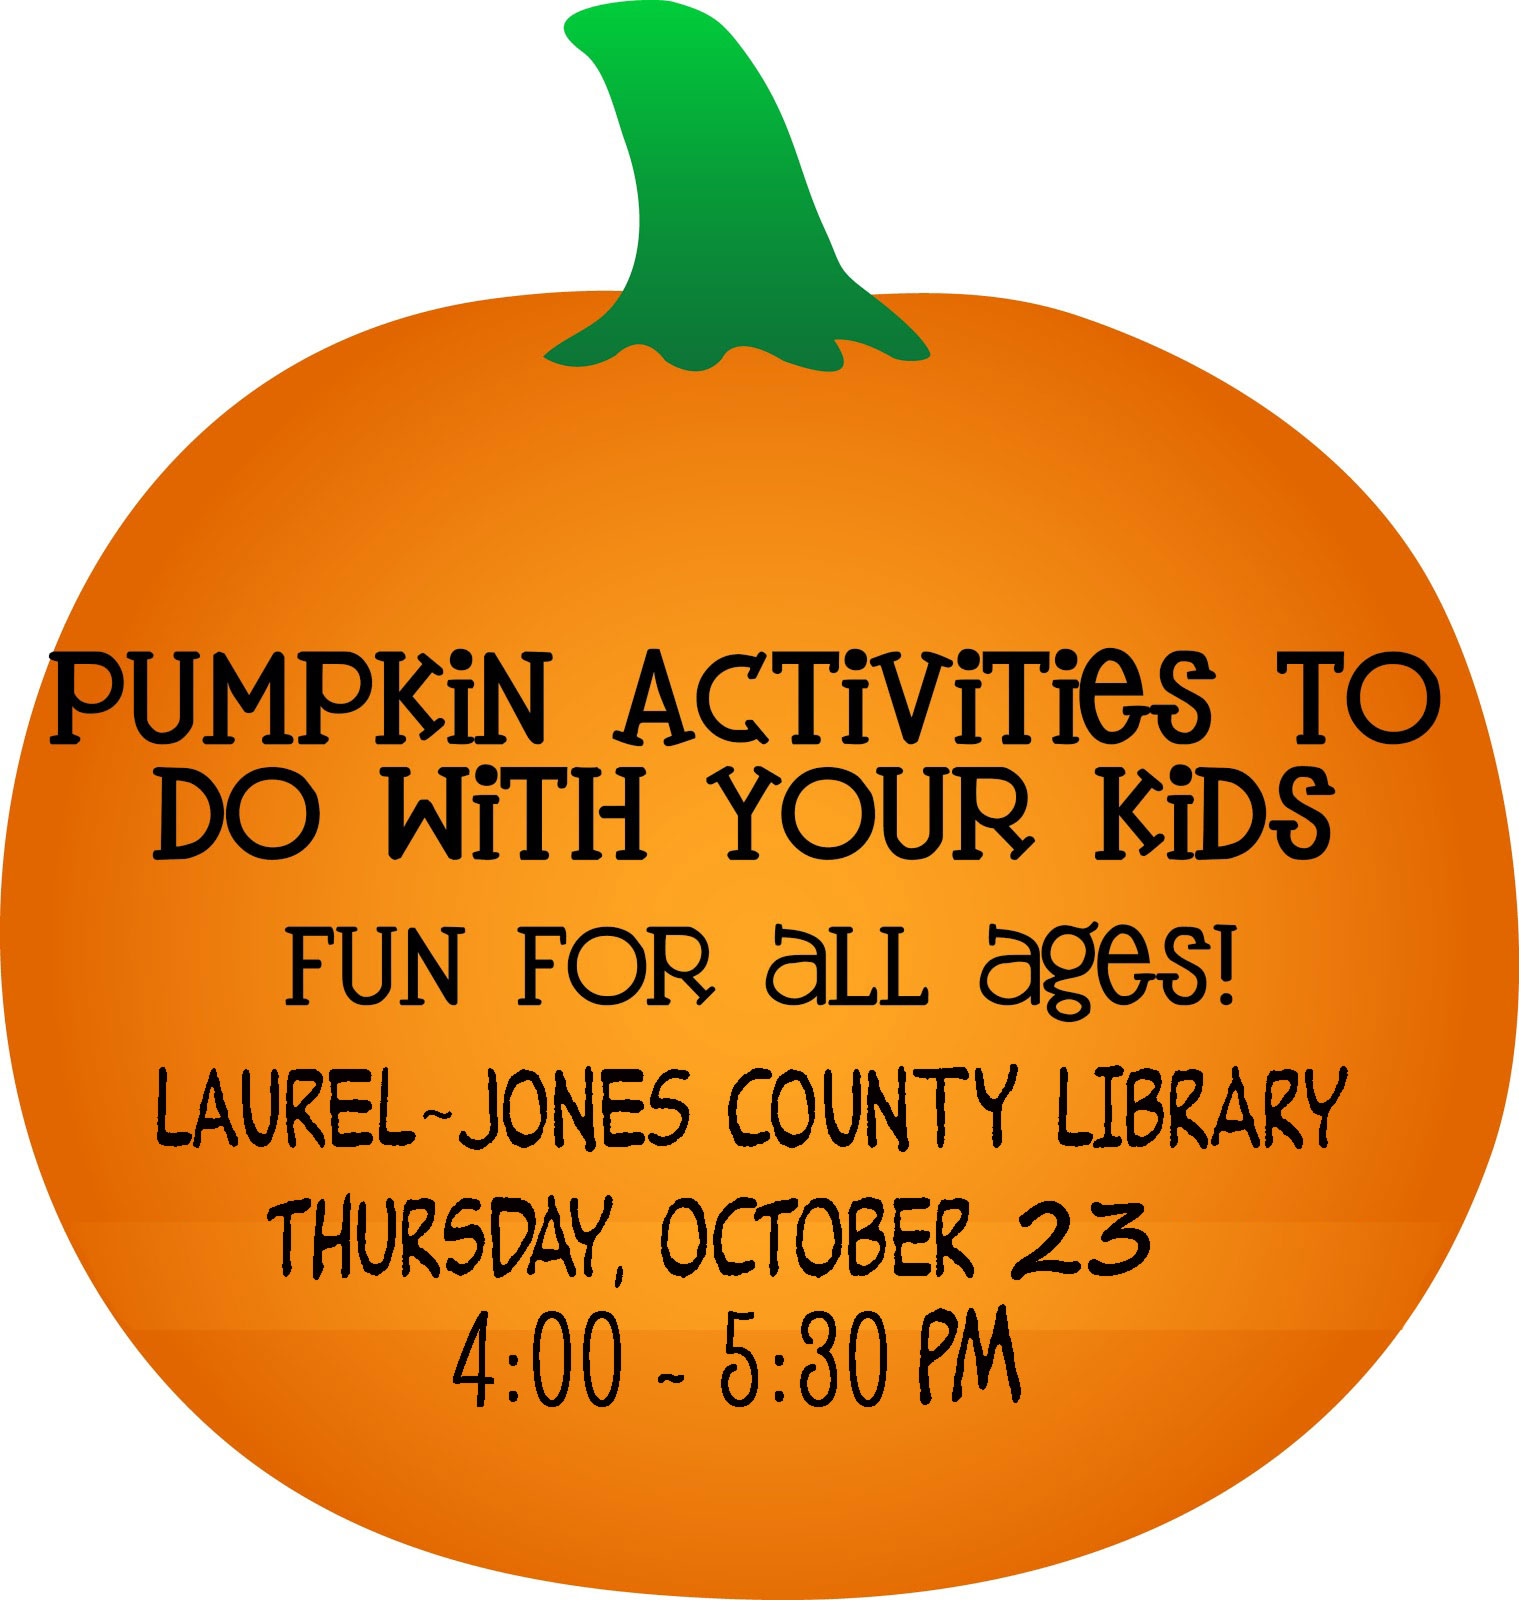 The City of Laurel, Pumpkin Fun Day